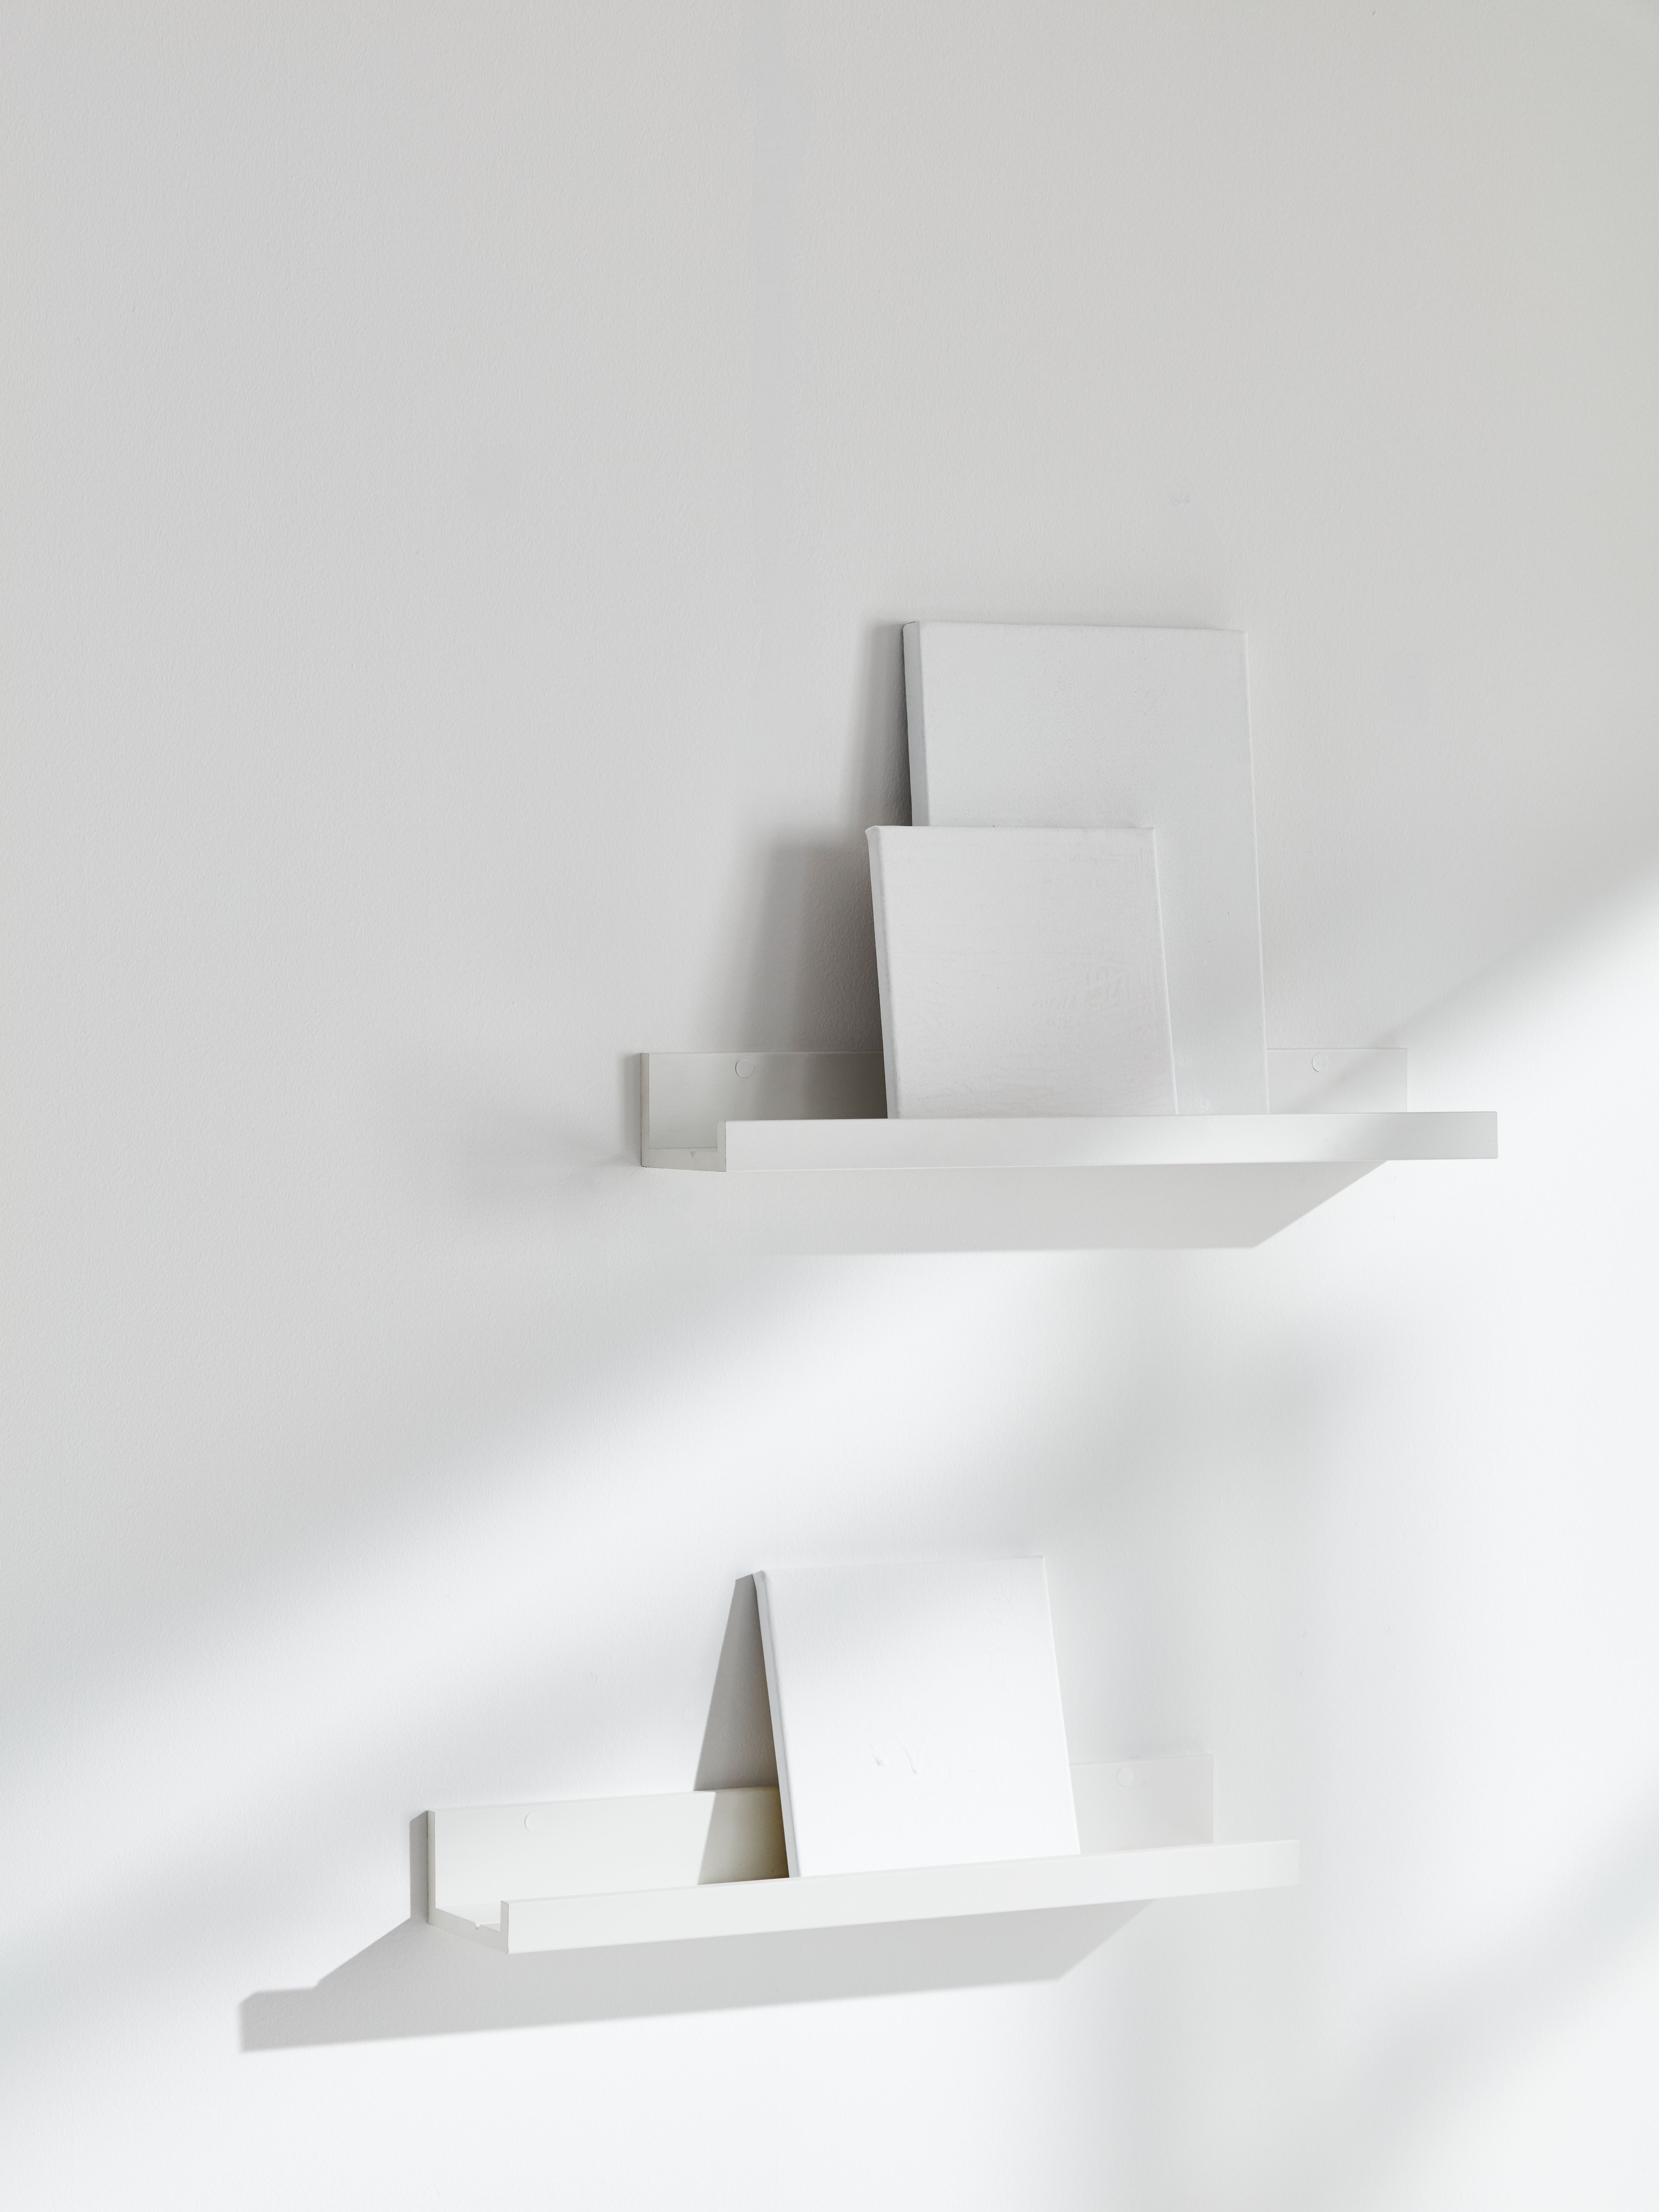 Room with white walls, two white picture ledges mounted on the wall holding blank white canvases.